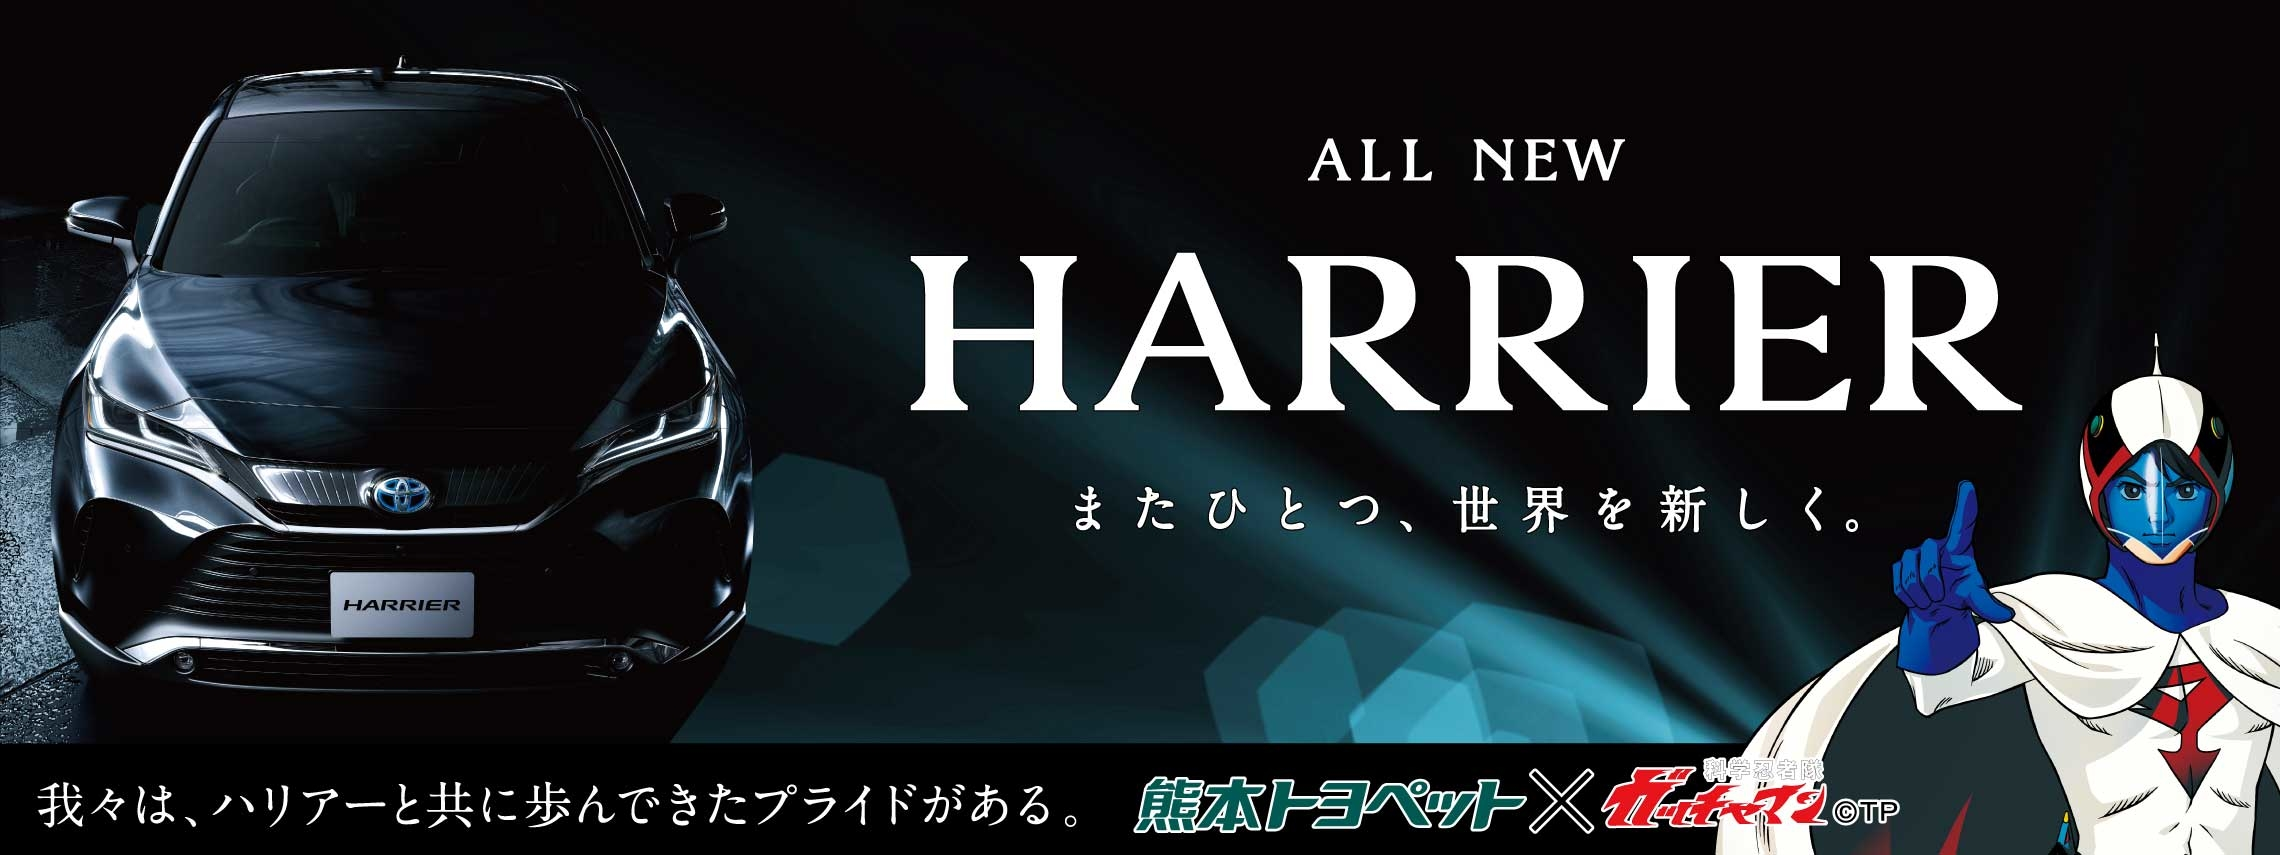 allnew_harrier